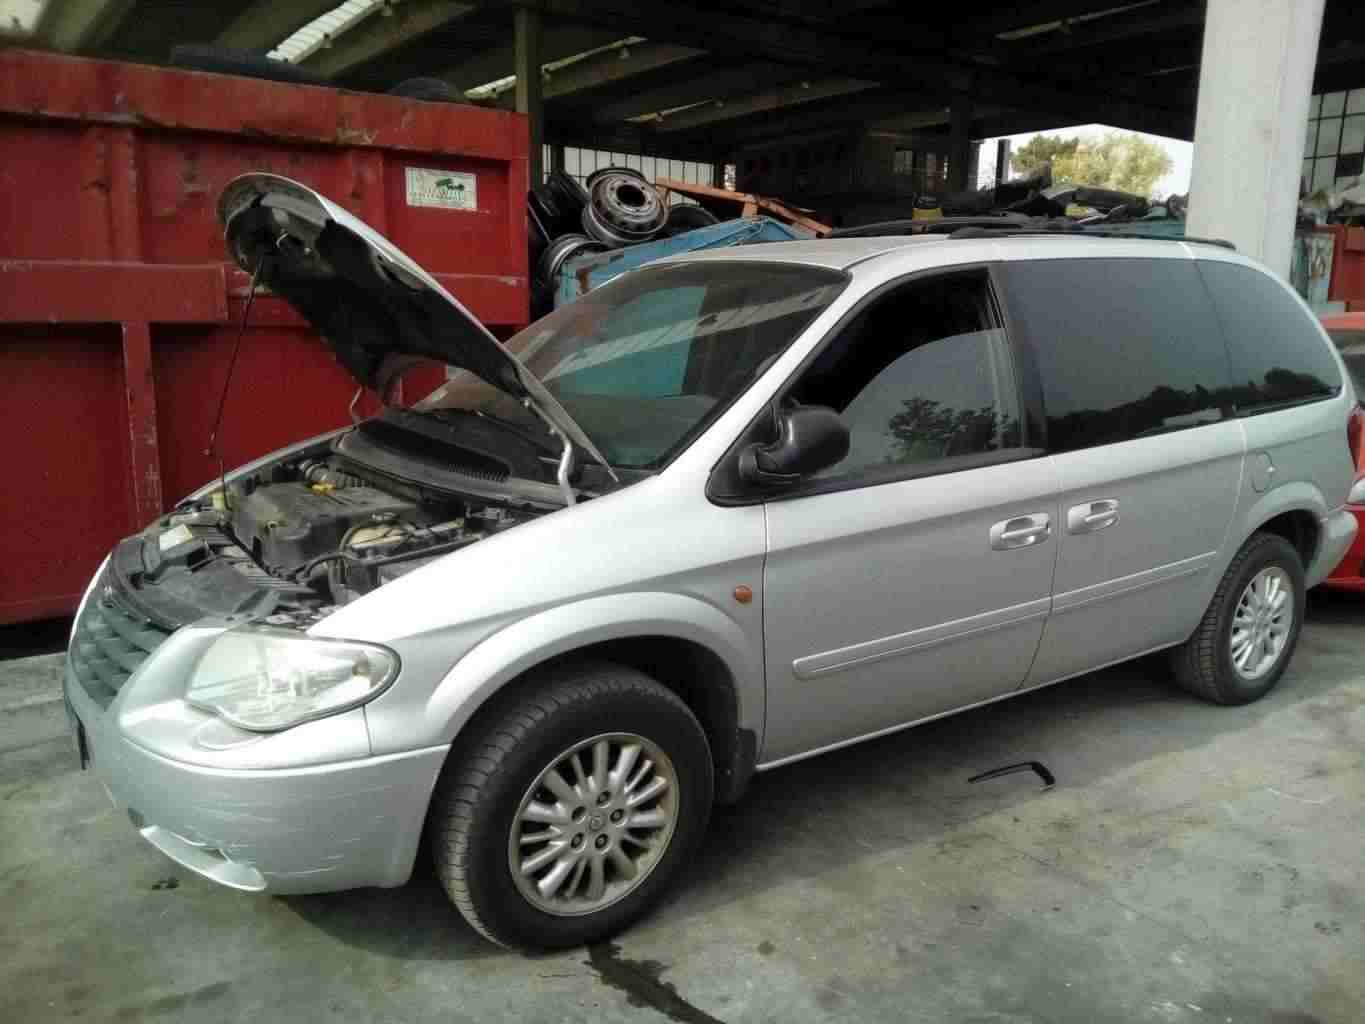 Pezzi Chrysler Voyager 2.5 CRD anno 2005 2.5L